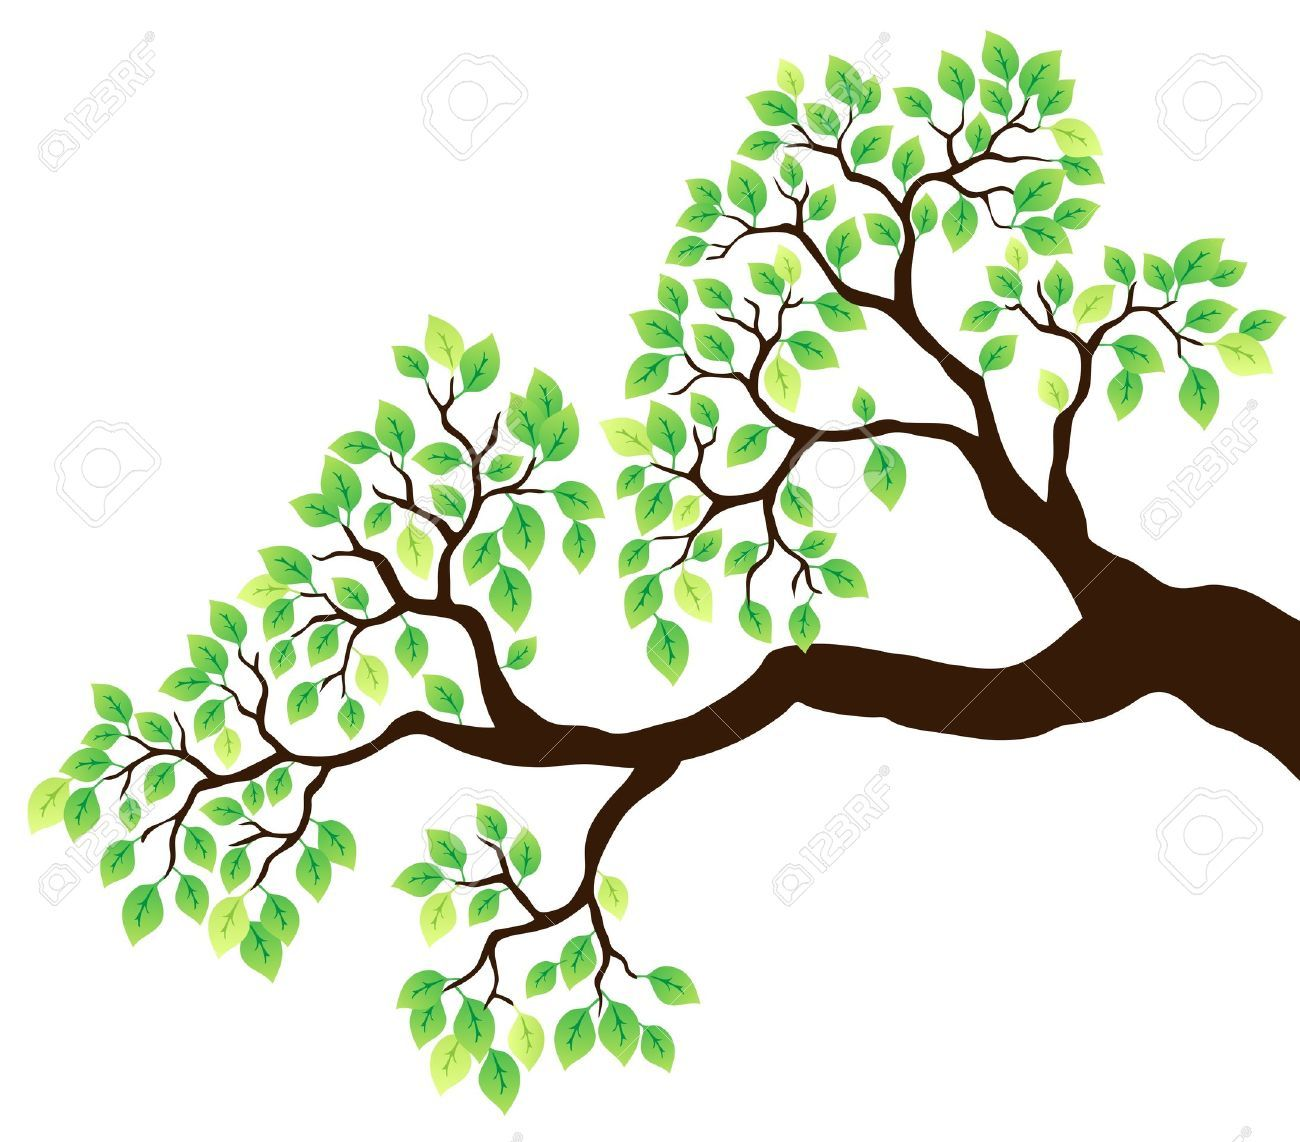 Tree branch with leaves clipart 8 » Clipart Portal.